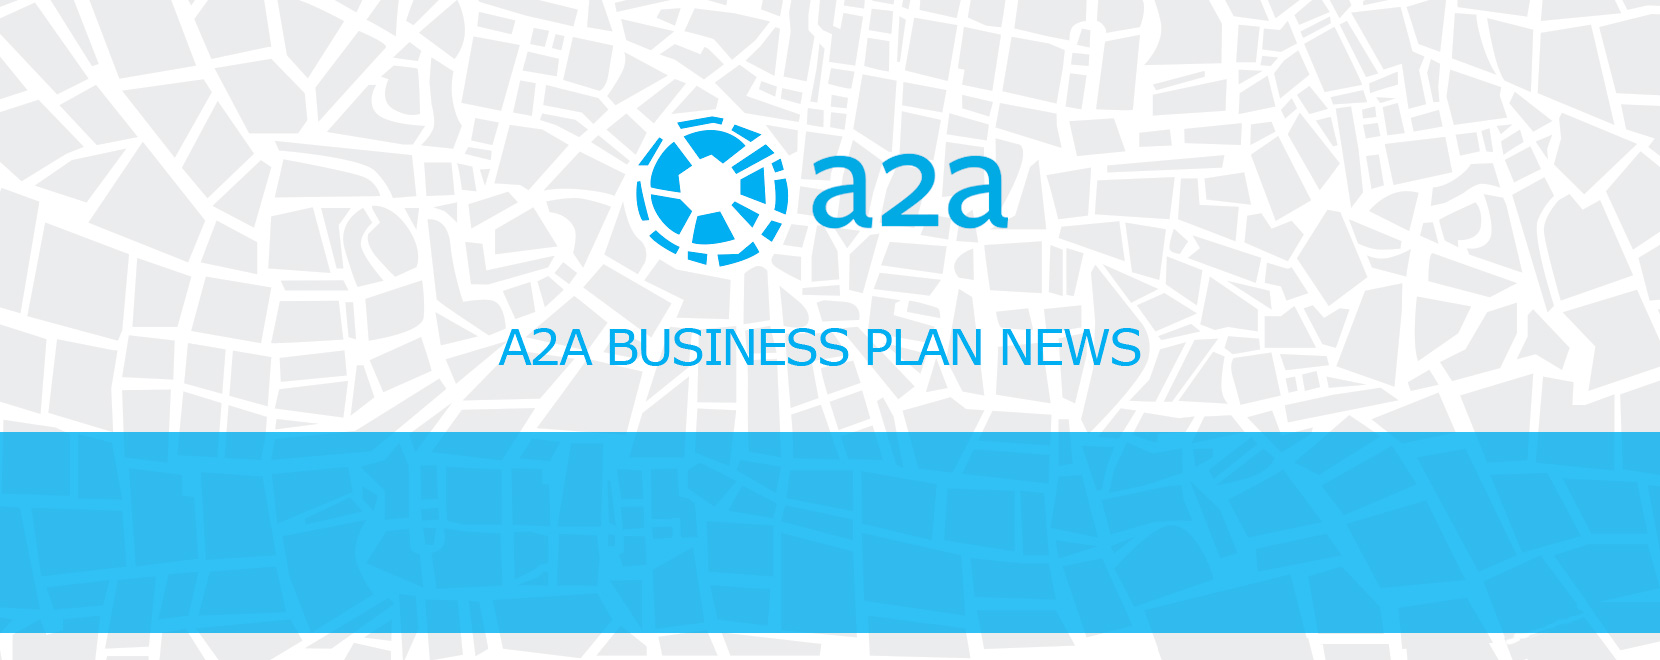 A2A Business Plan News